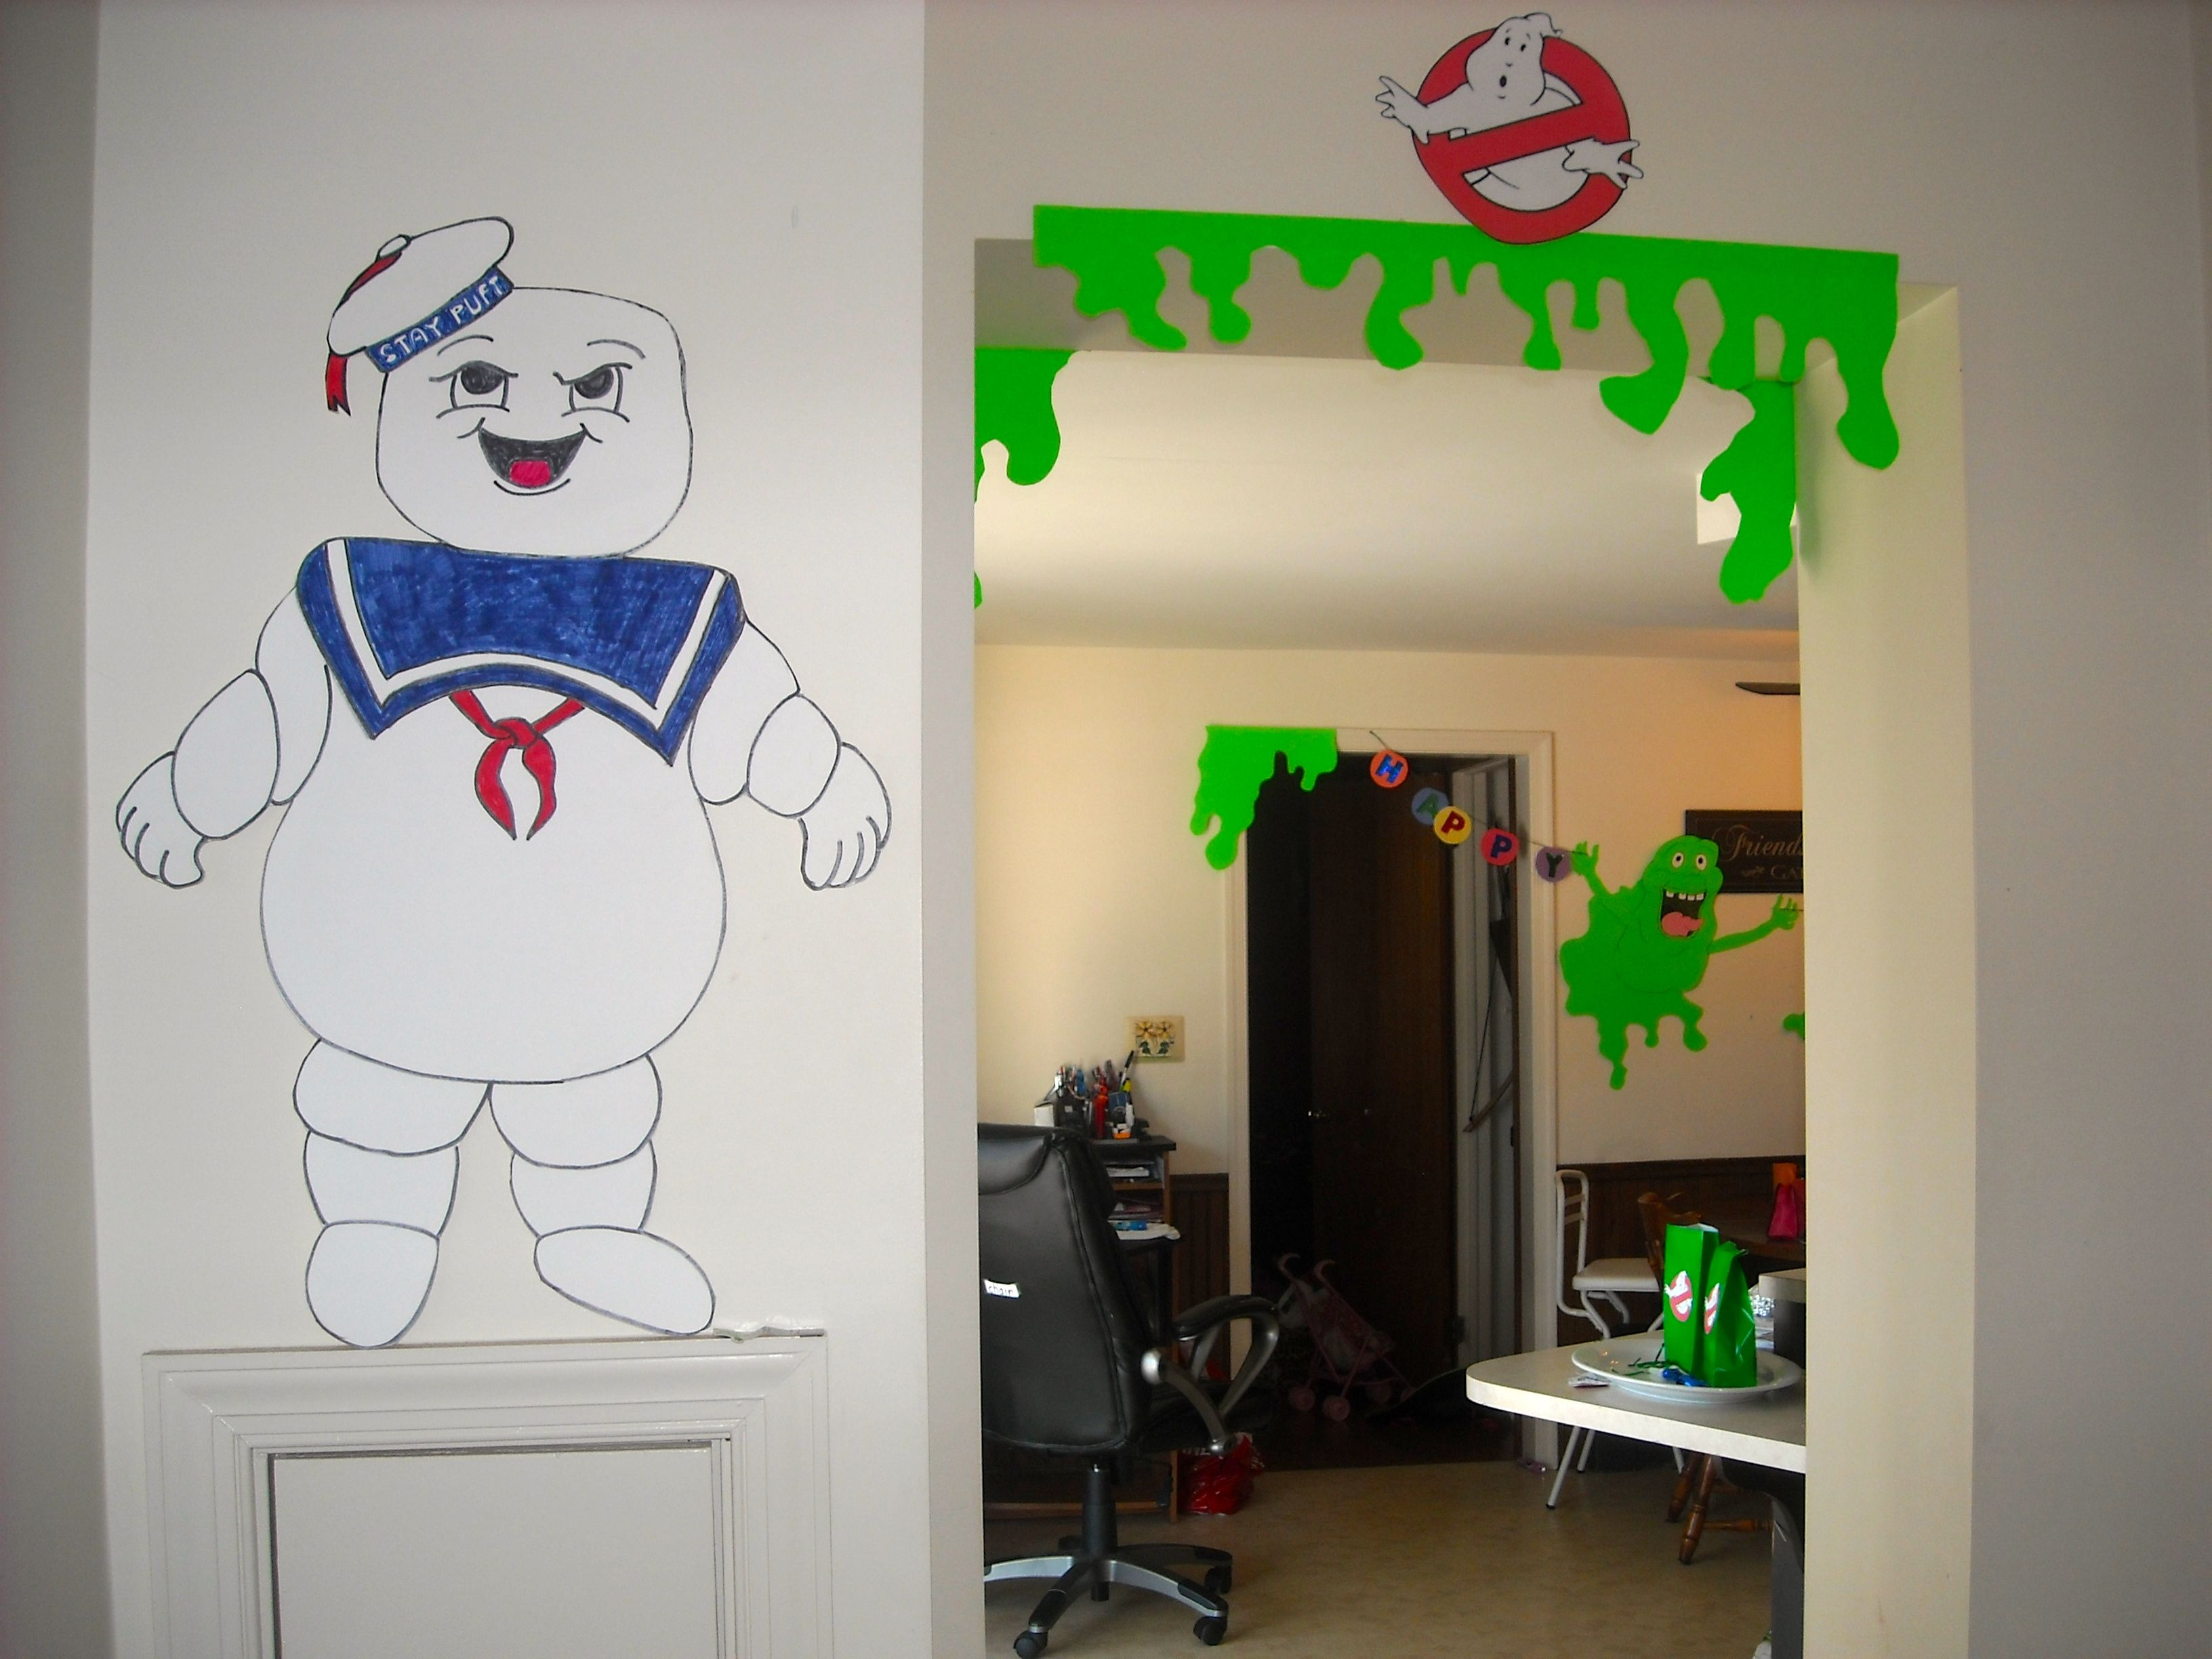 Entryway Decorations That I Drew Ghostbusters Party Ghost Busters Party Ghostbusters